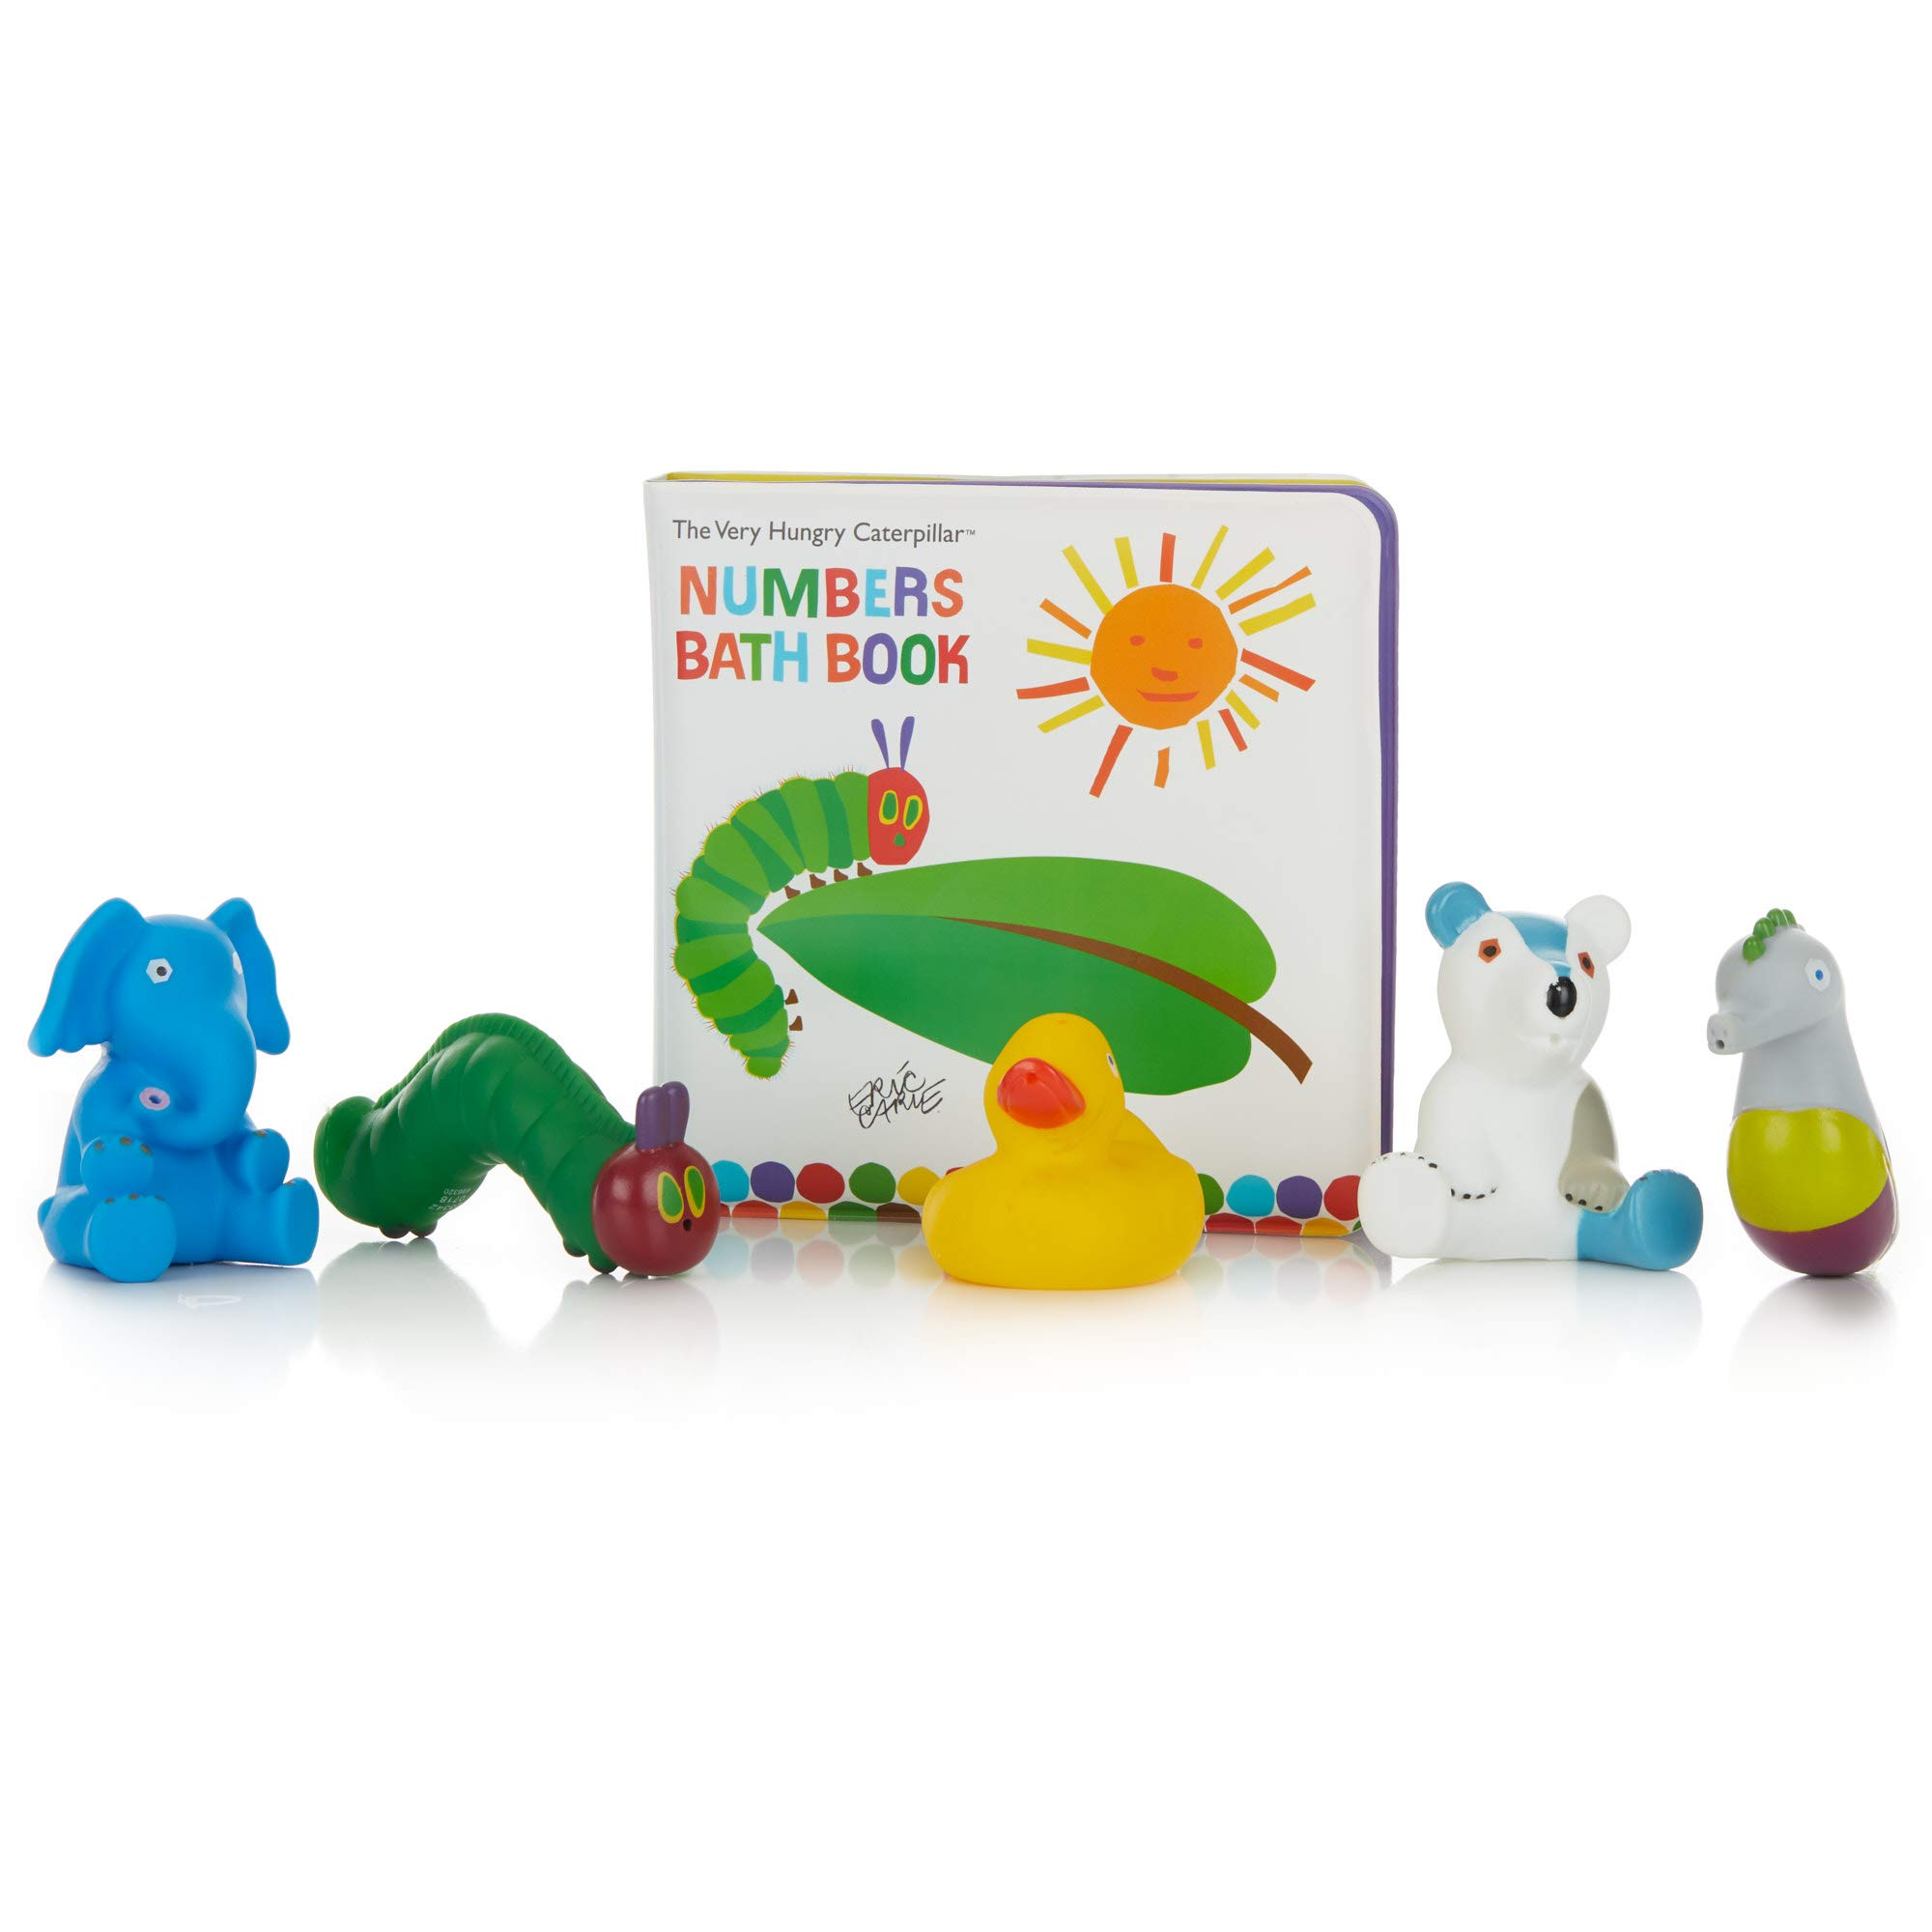 The World of Eric Carle, The Very Hungry Caterpillar Numbers Bath Book and Squirty Toys Set